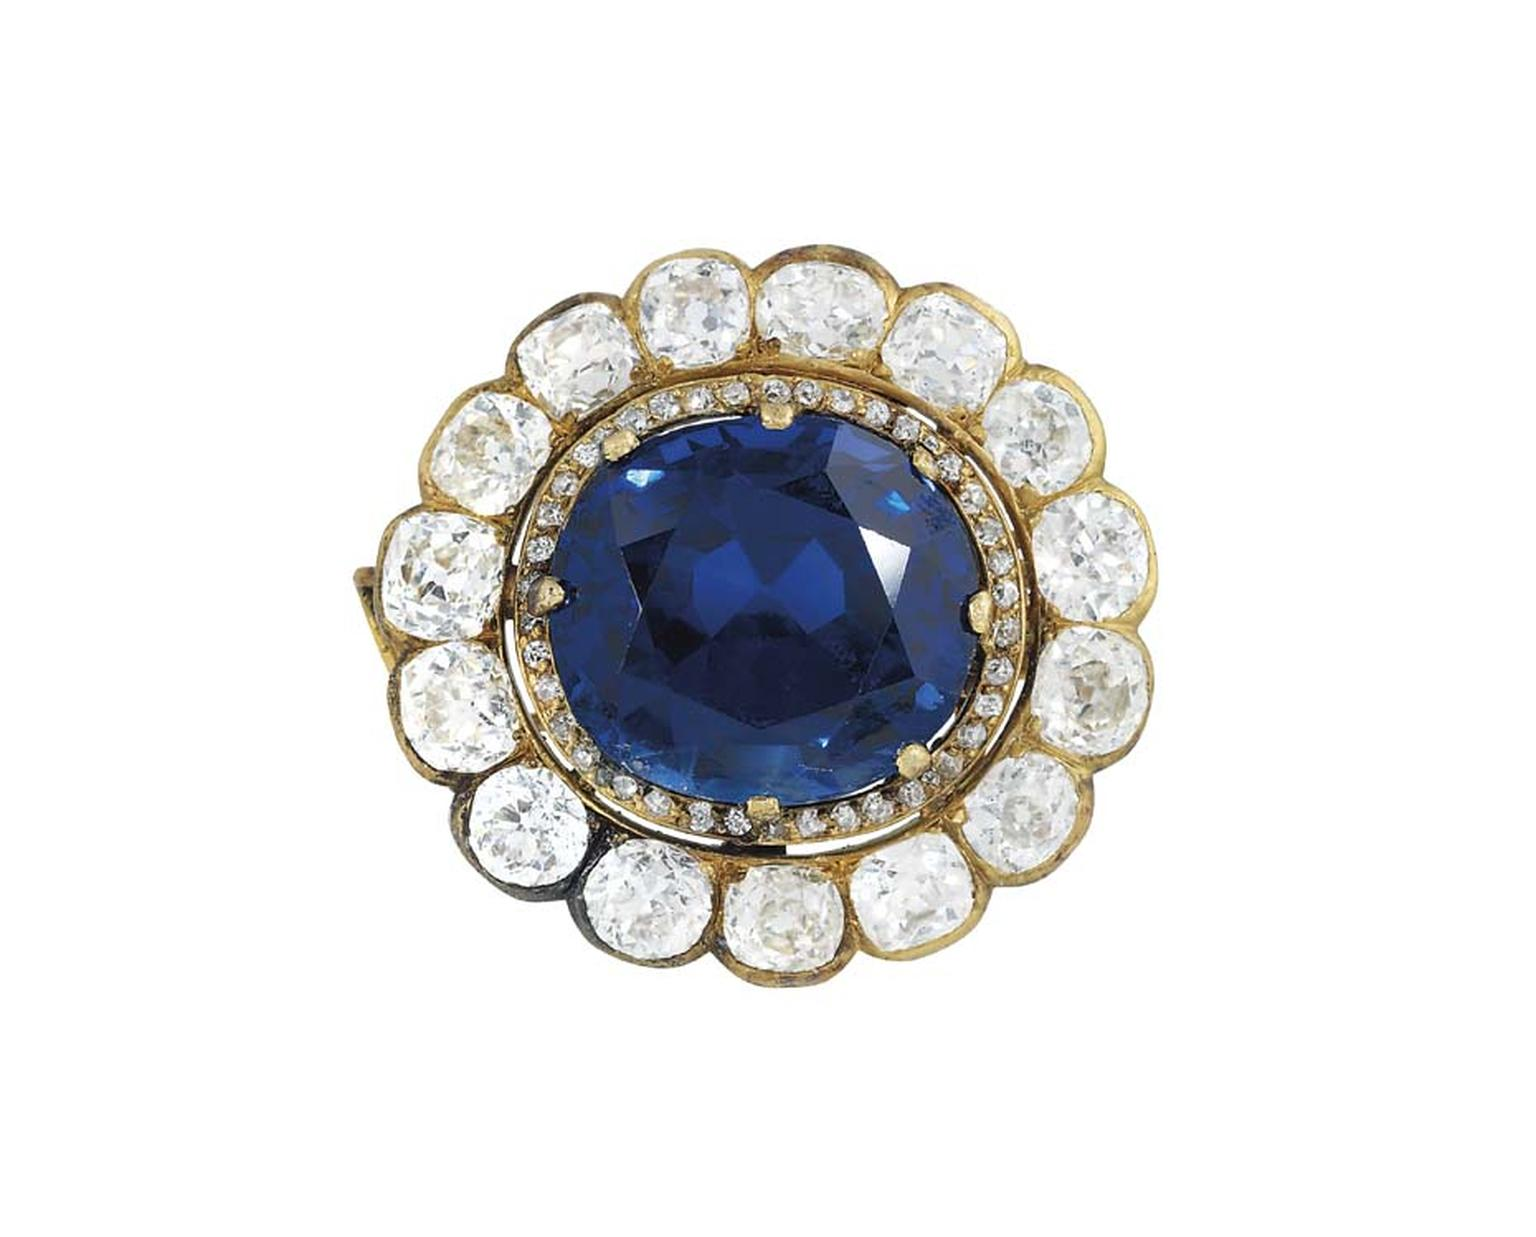 Lot 252 at Christie's sale of Important Jewels in London was a sapphire and diamond pendant set with a 41.00ct Burmese sapphire. It more than tripled its estimate to sell for £1,034,500 (estimate £200,000-300,000).